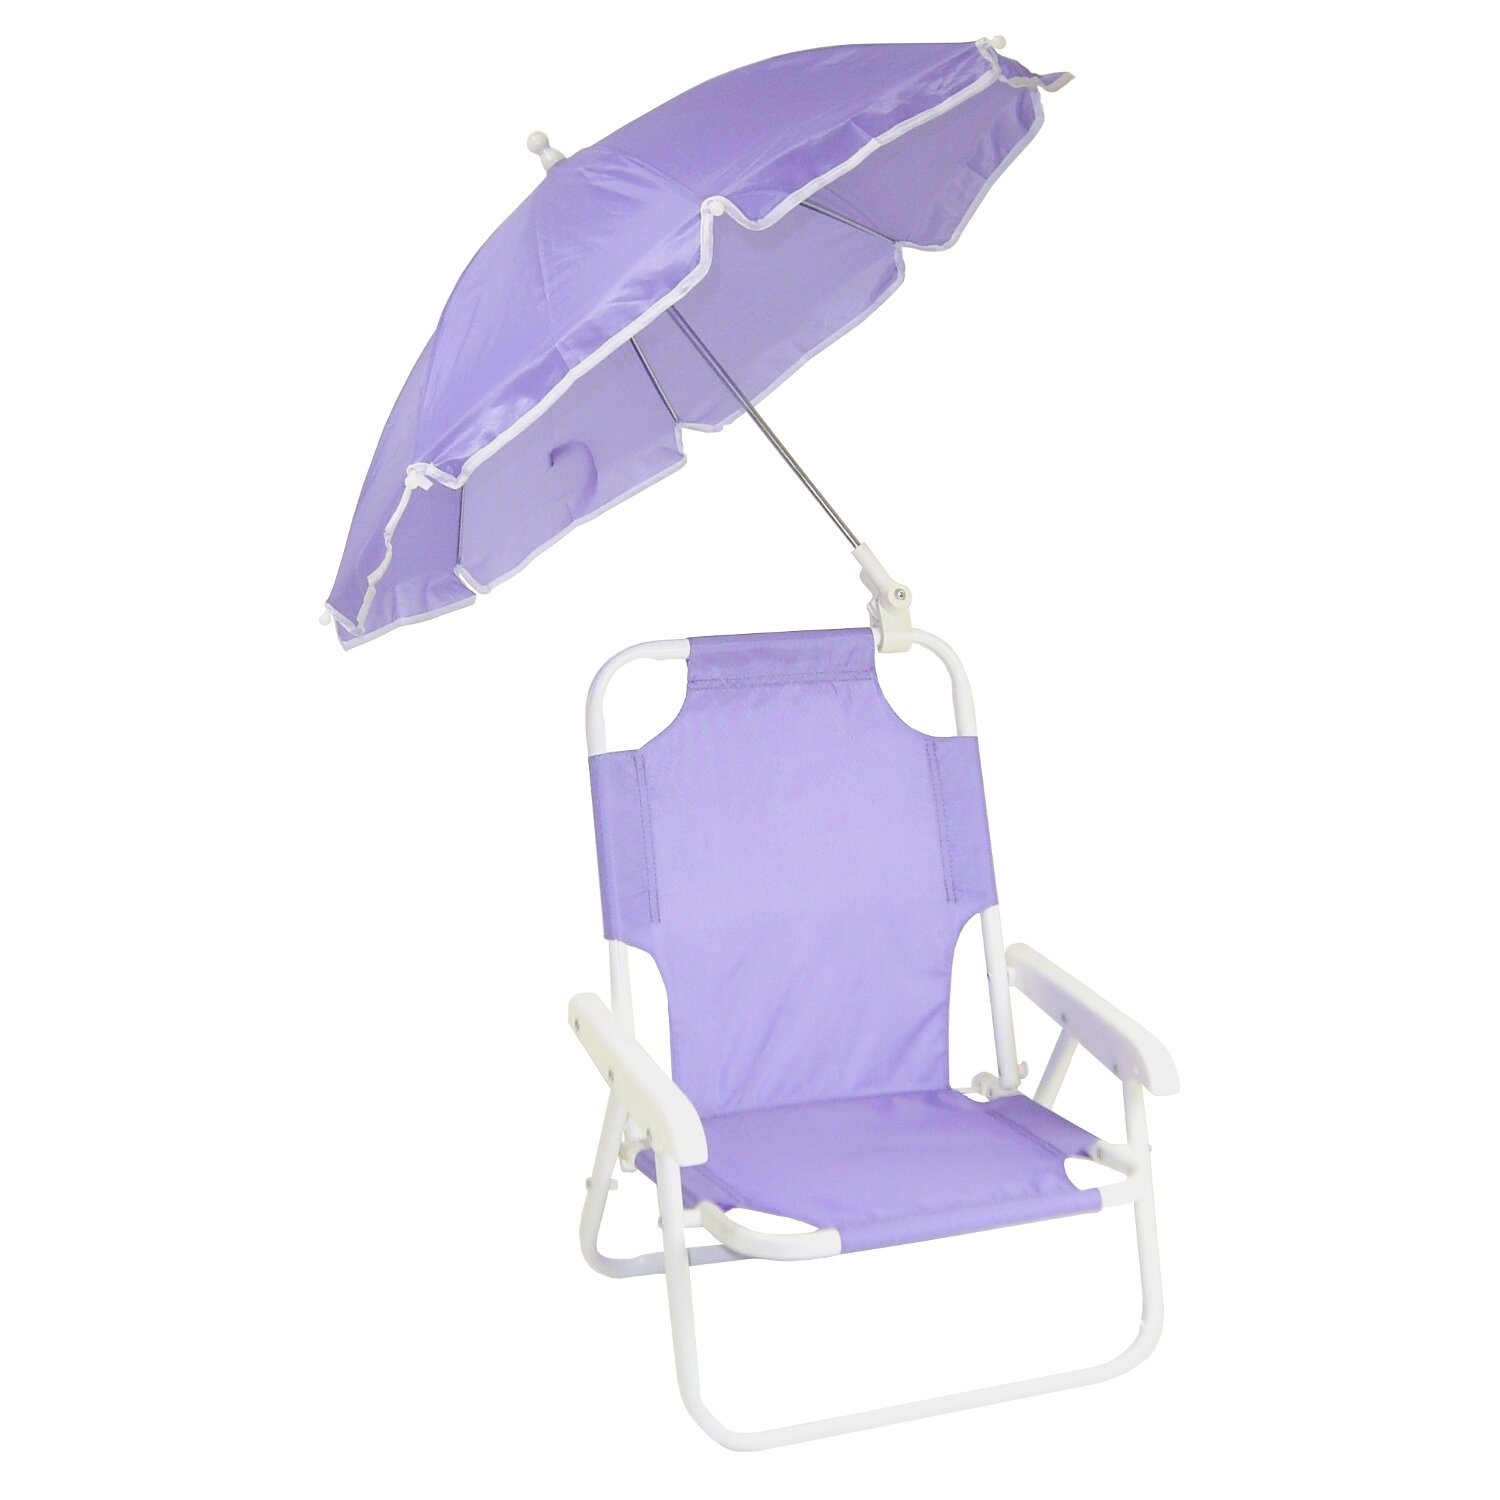 Redmon Baby Beach Chair and Umbrella Purple 9001PR New